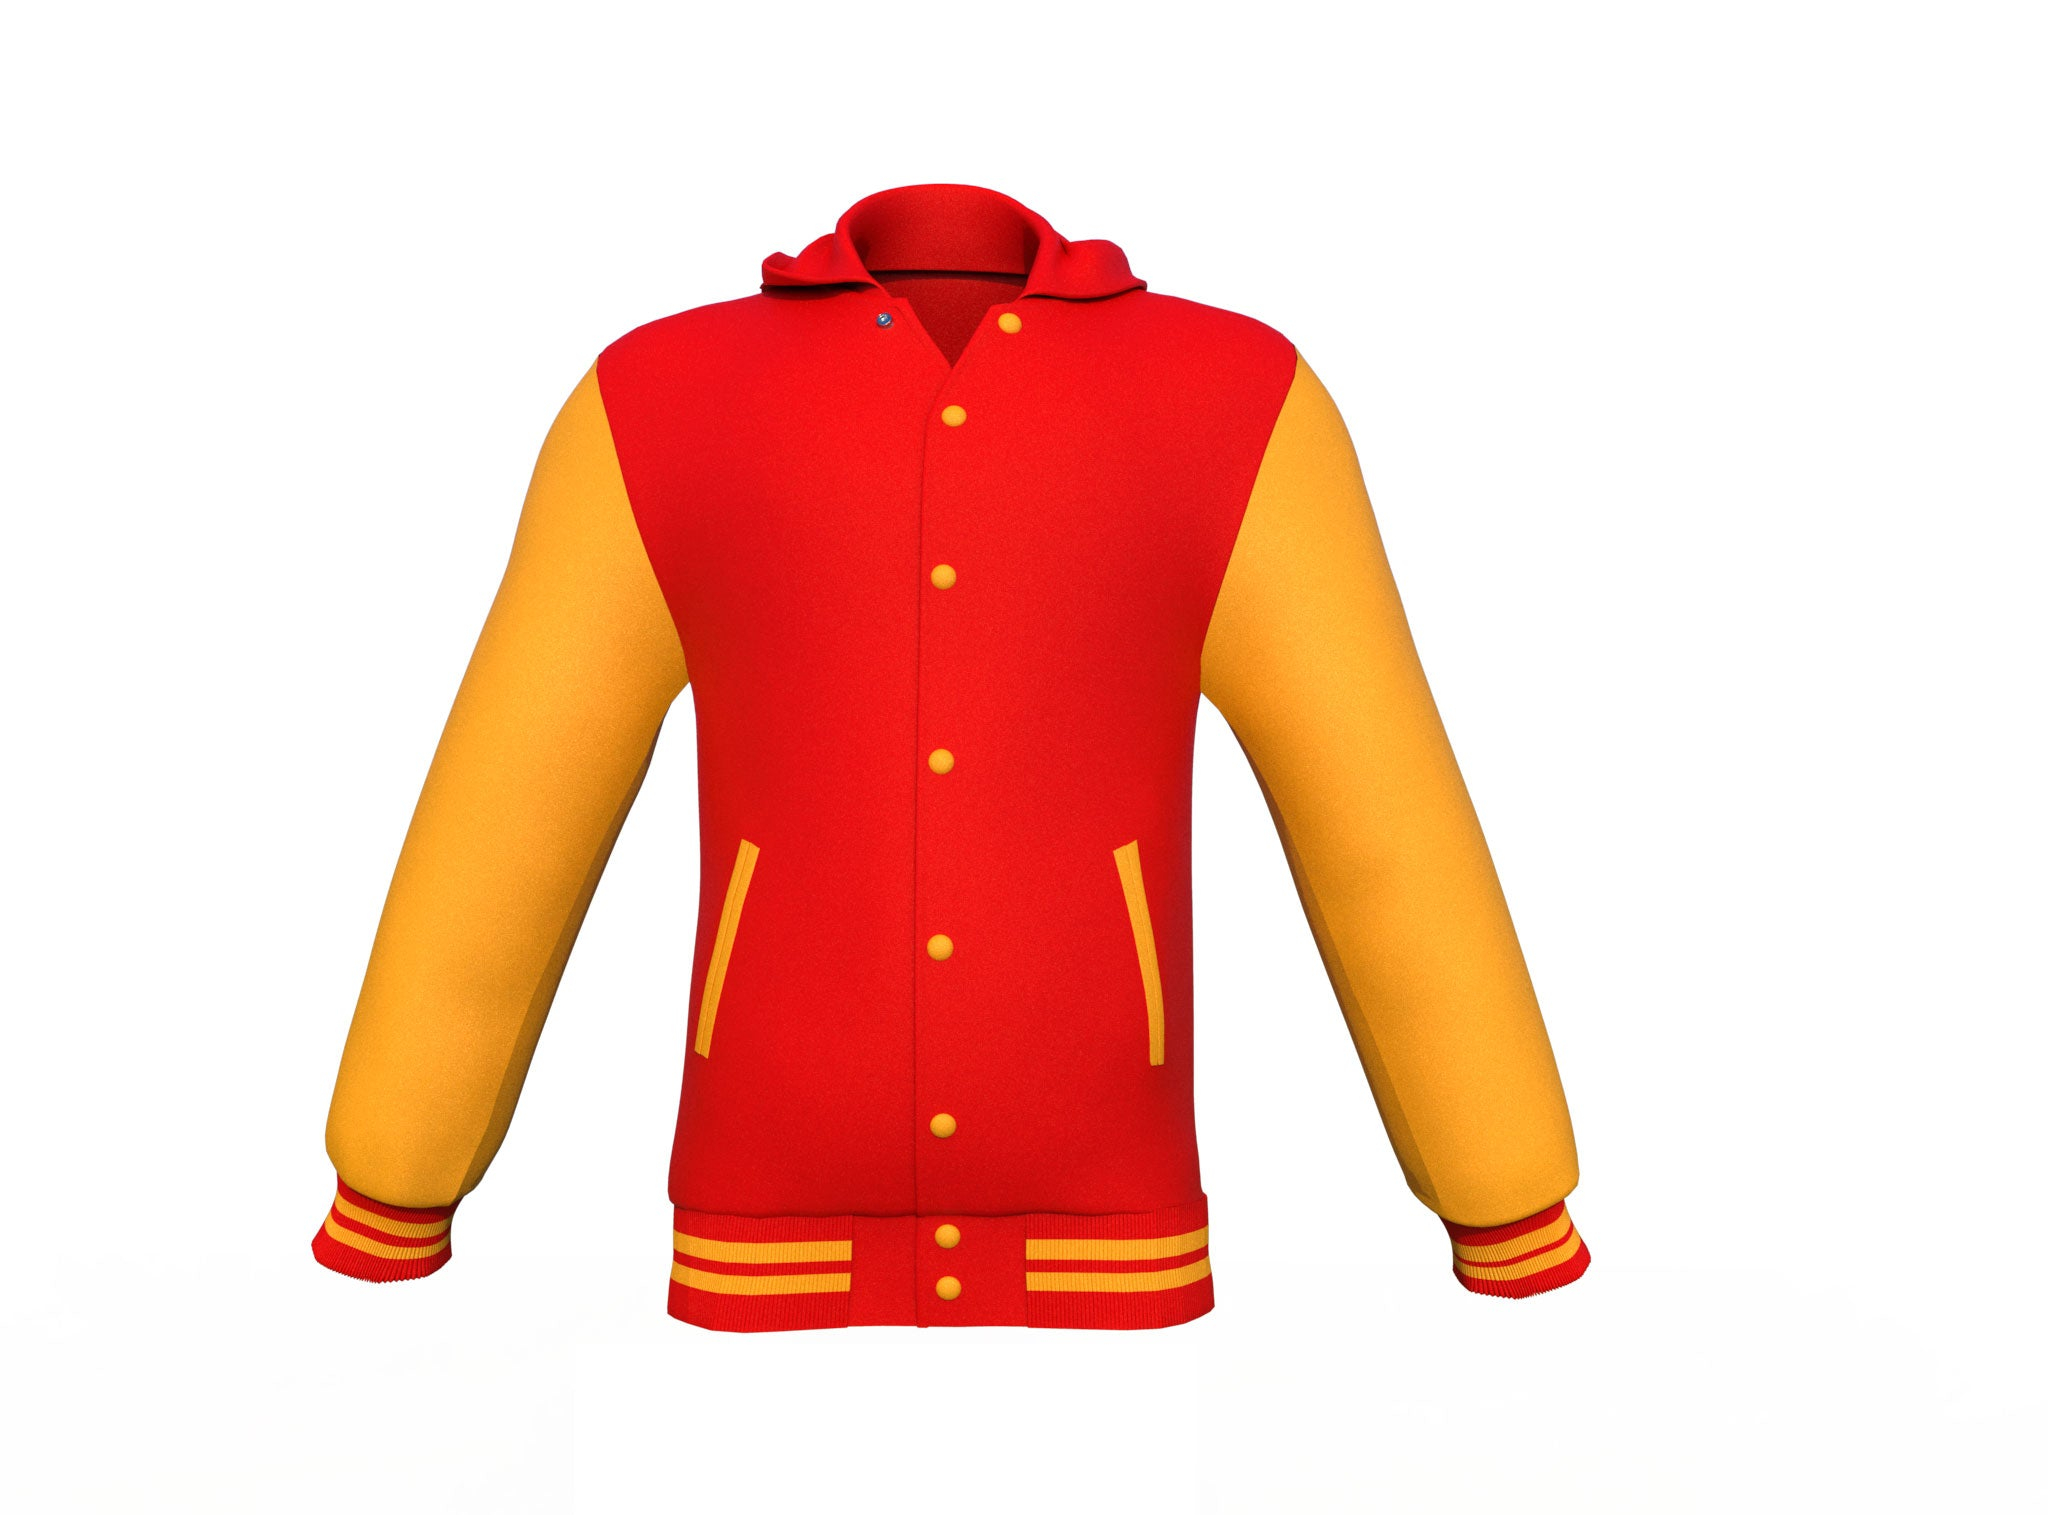 Red Varsity Letterman Jacket with Gold Sleeves